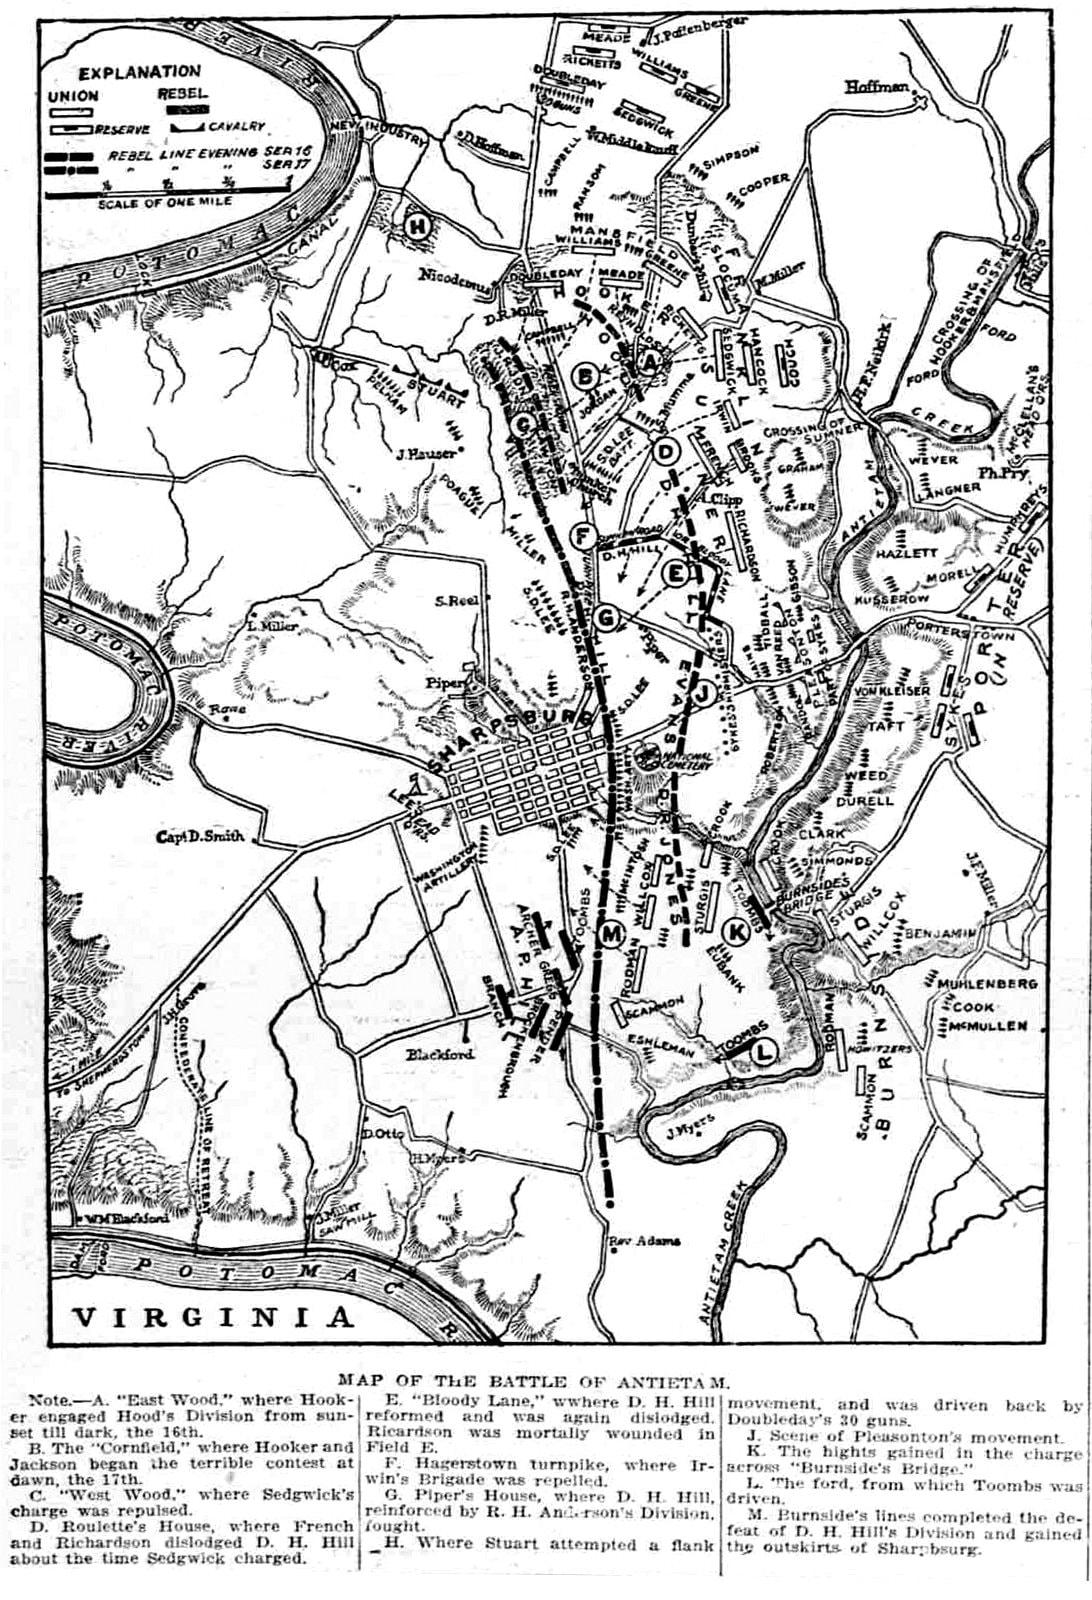 Map of the Battle of Antietam (from 1907)